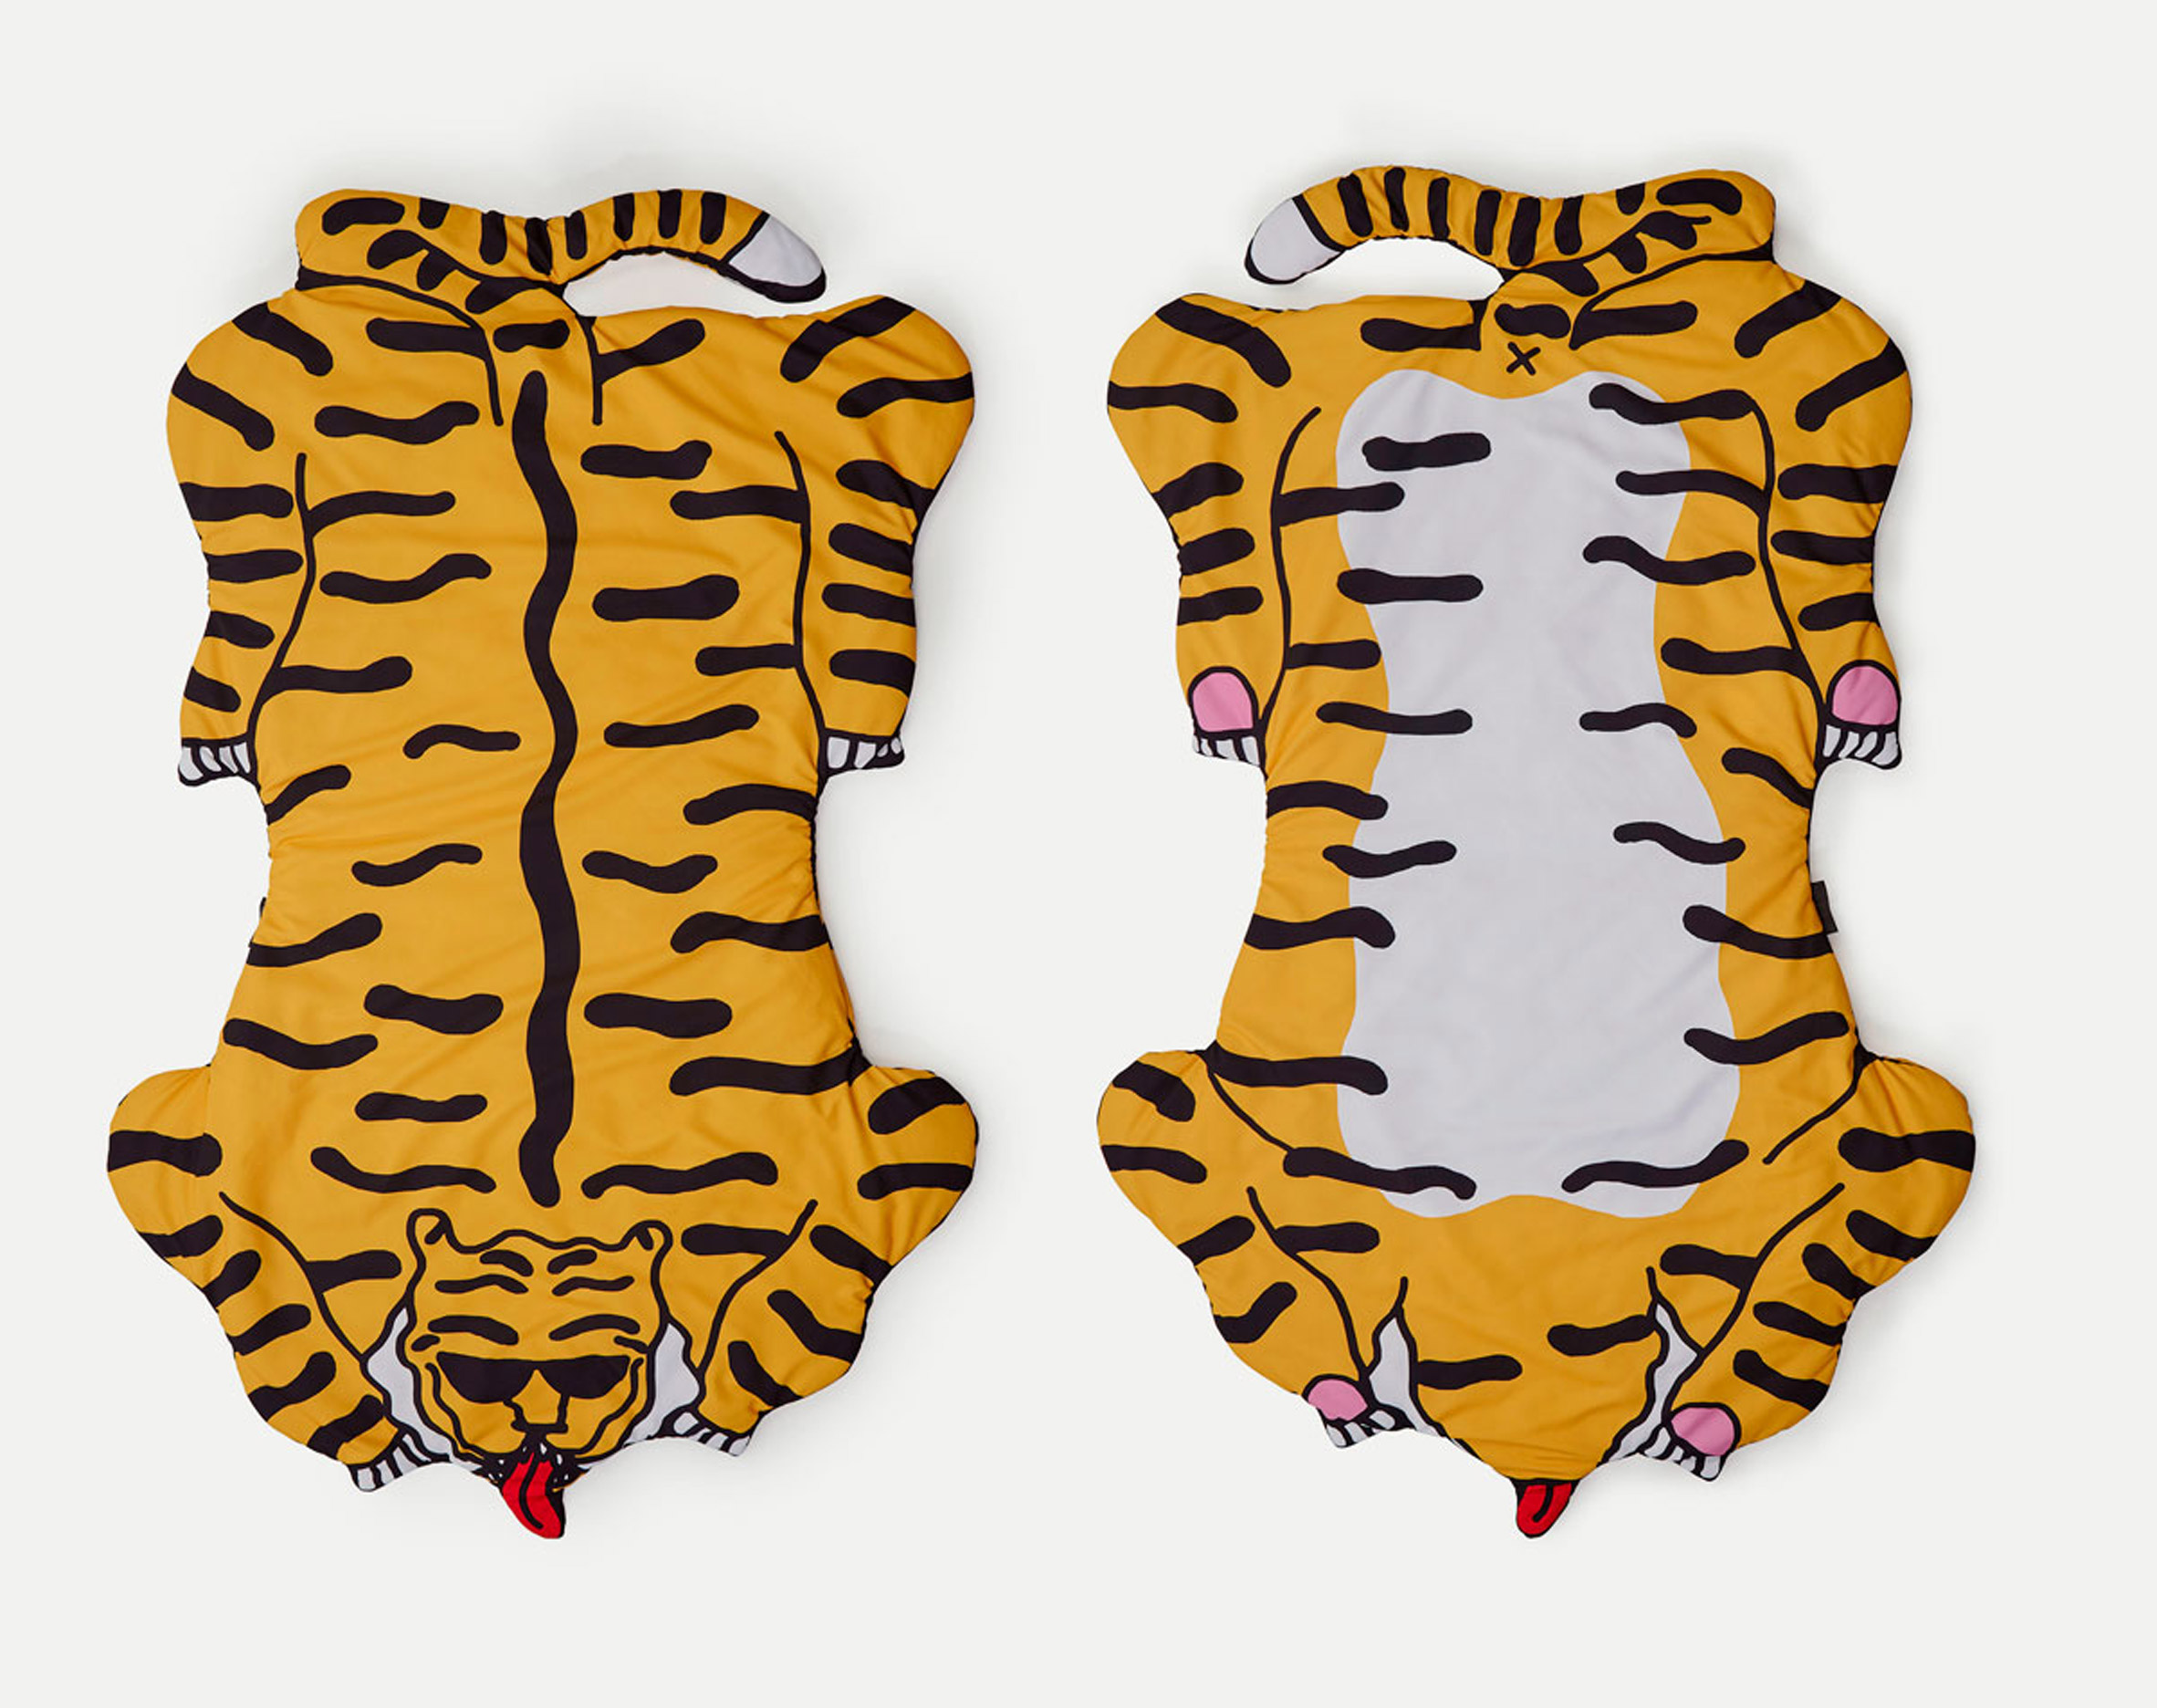 Sancal blankets by Egle Zvirblyte are patterned with tigers and bananas